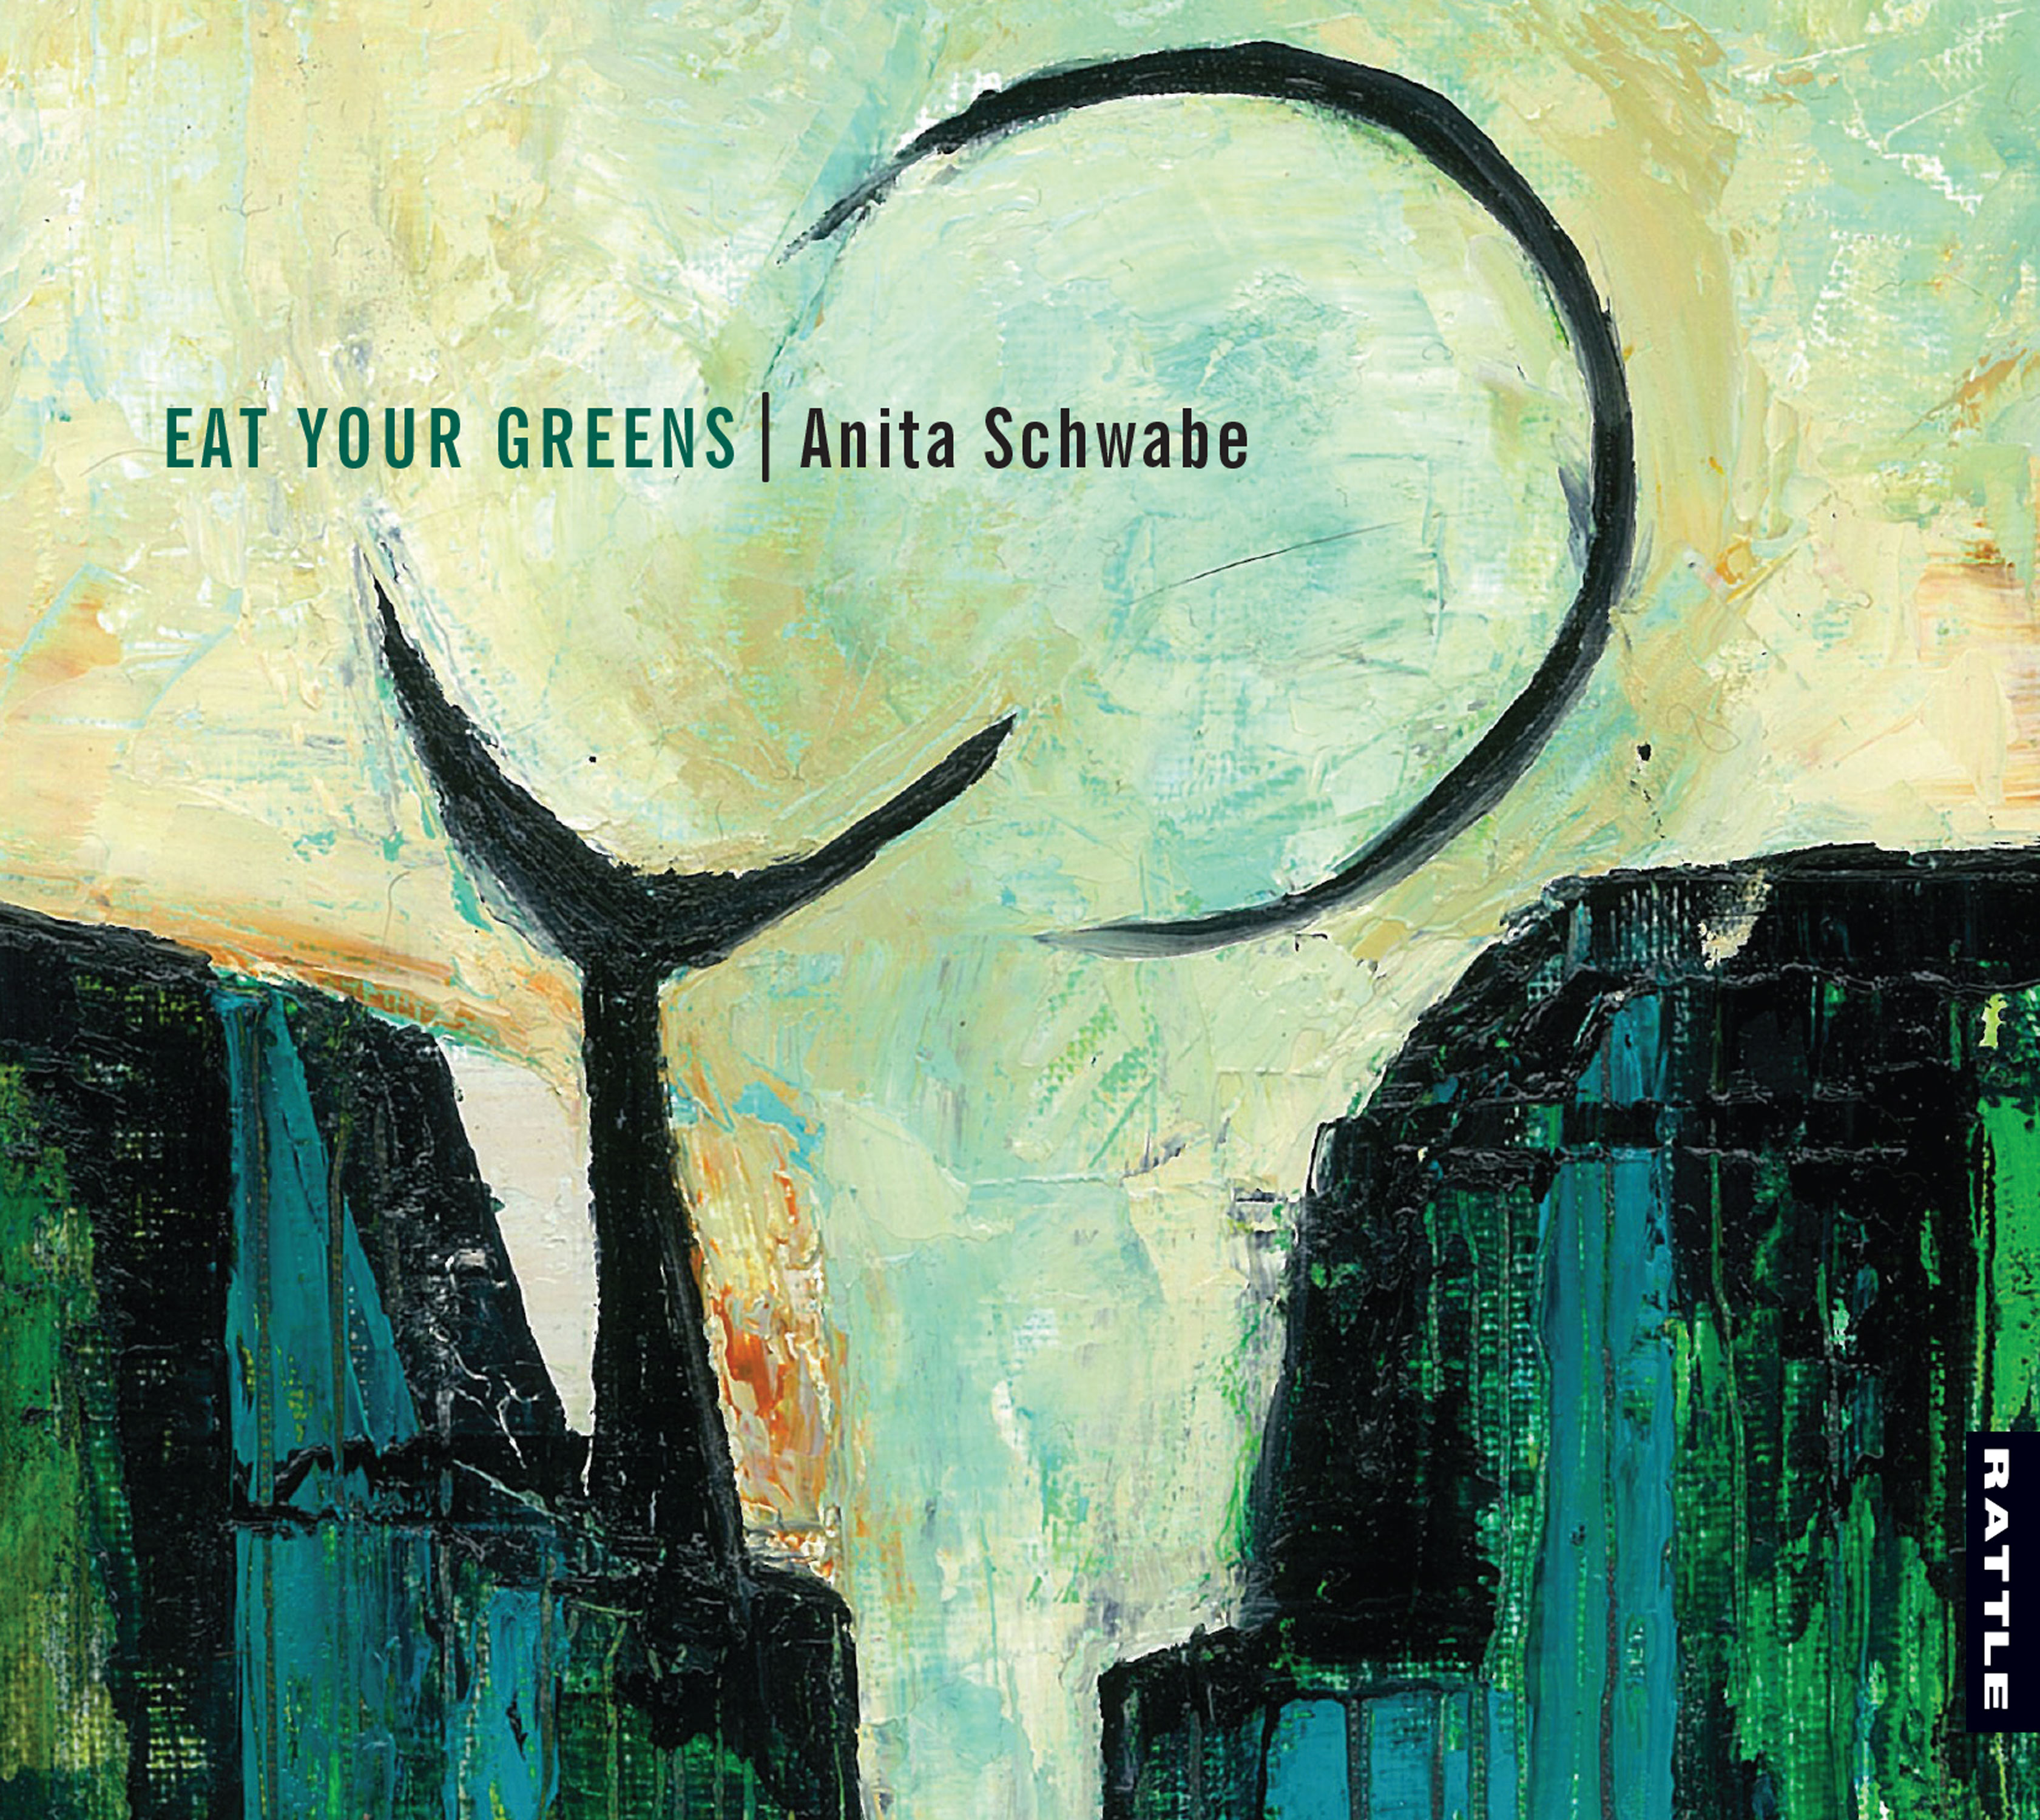 Anita Schwabe | Eat your Greens - downloadable MP3 ALBUM